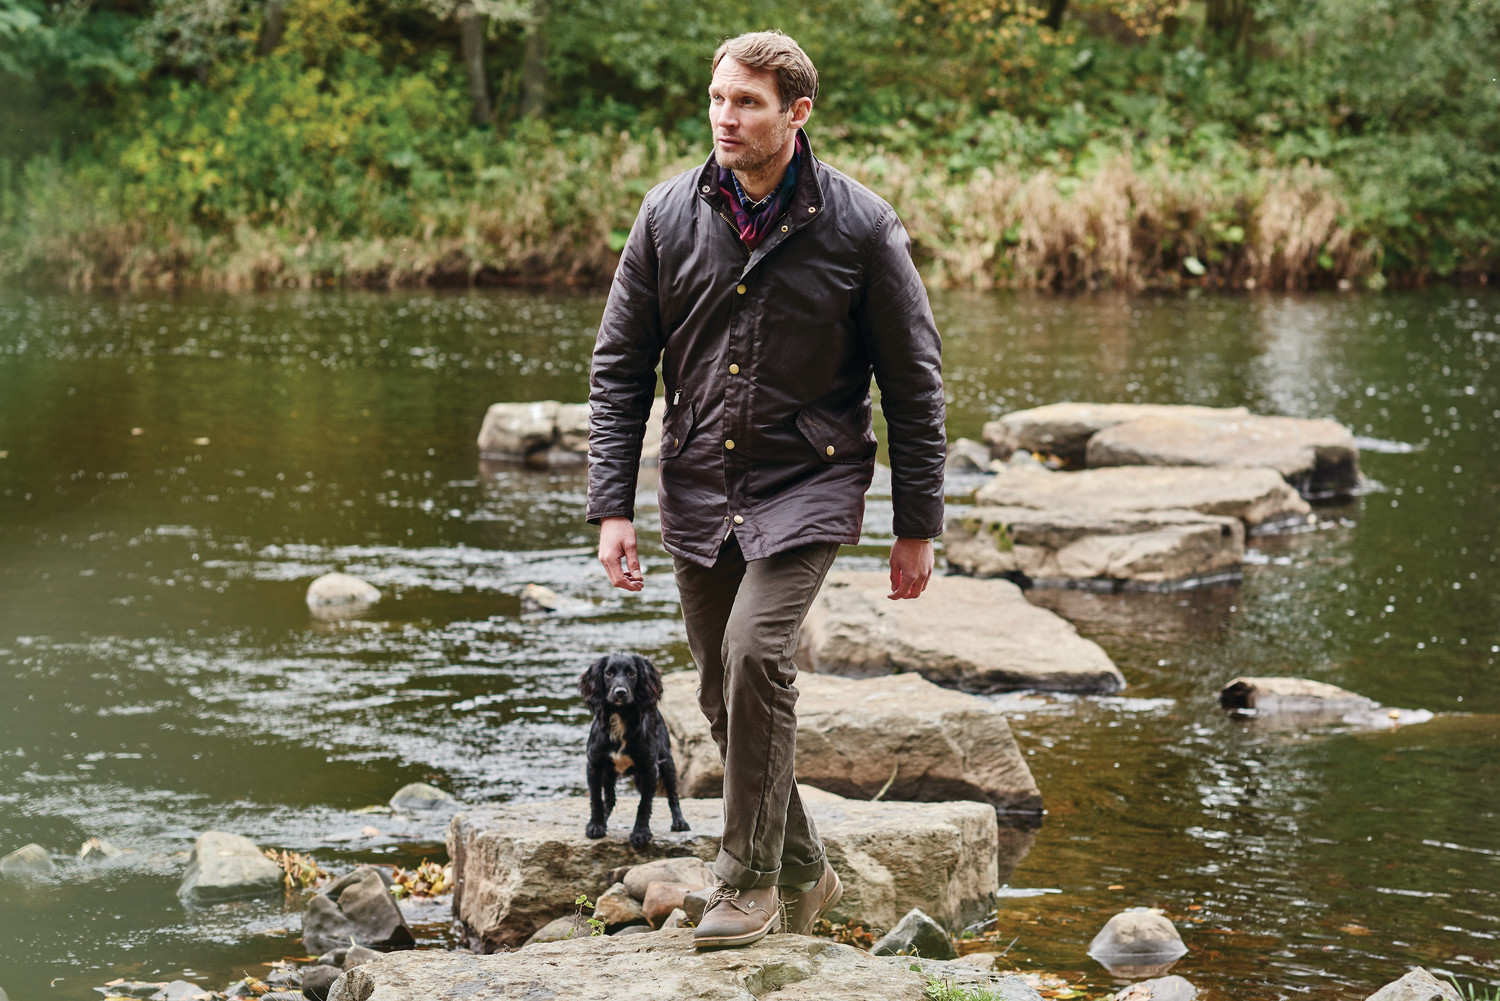 Countrywear-Prestbury wax jacket-MWX0726RU91-Rustic. Neuston twill-MTR0465ST51-Stone. Bramley-MFO0325BR91-Dark Brown